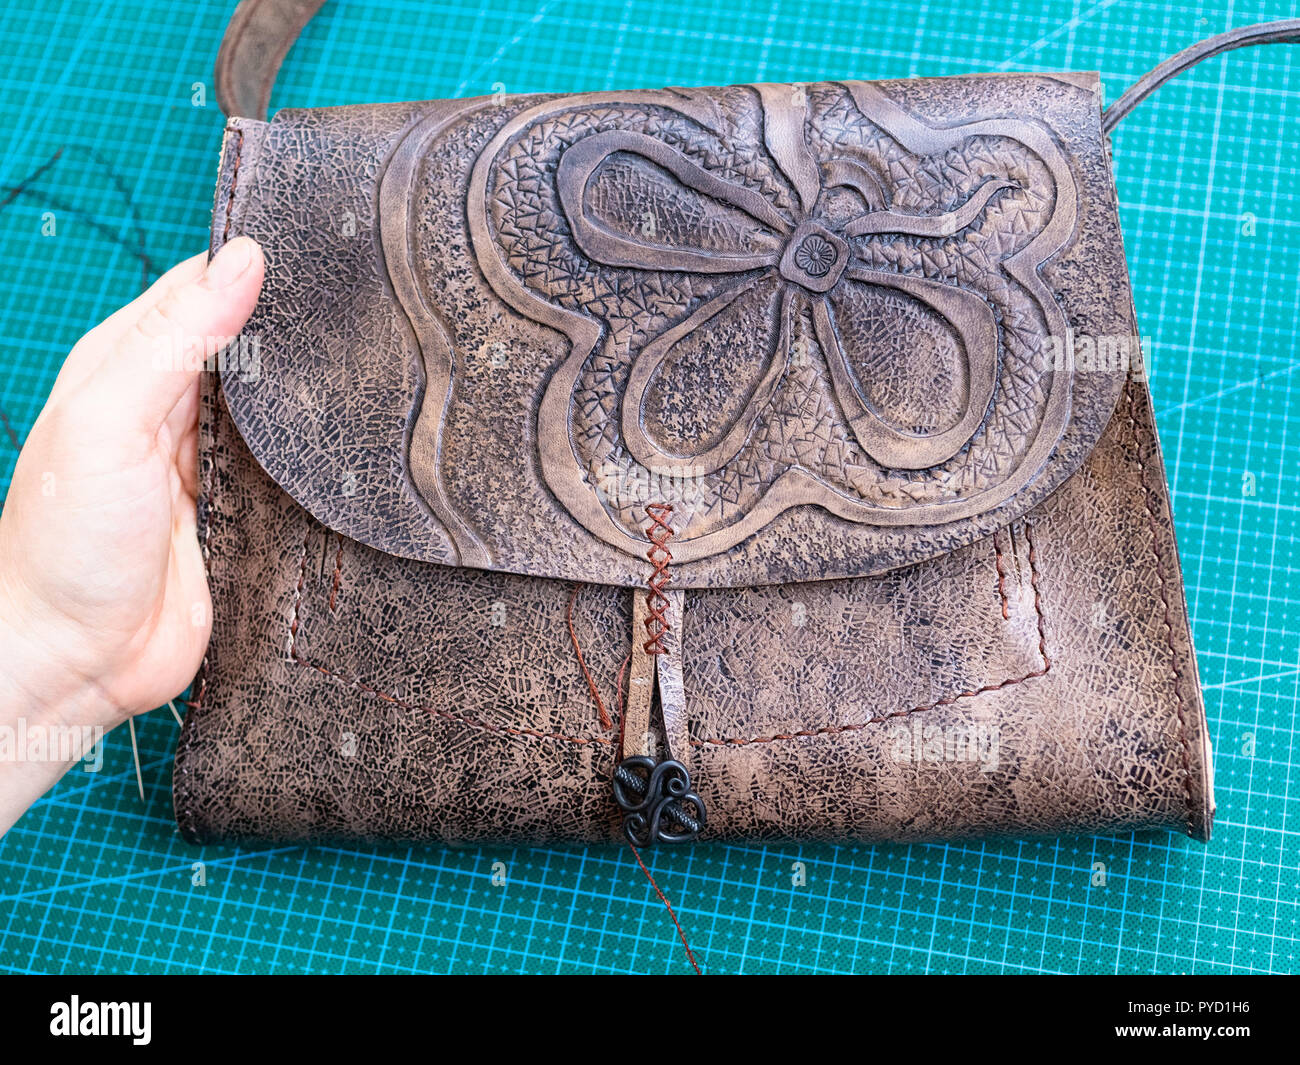 workshop of making the carved leather bag - craftsman shows the carved flap of the handbag - Stock Image